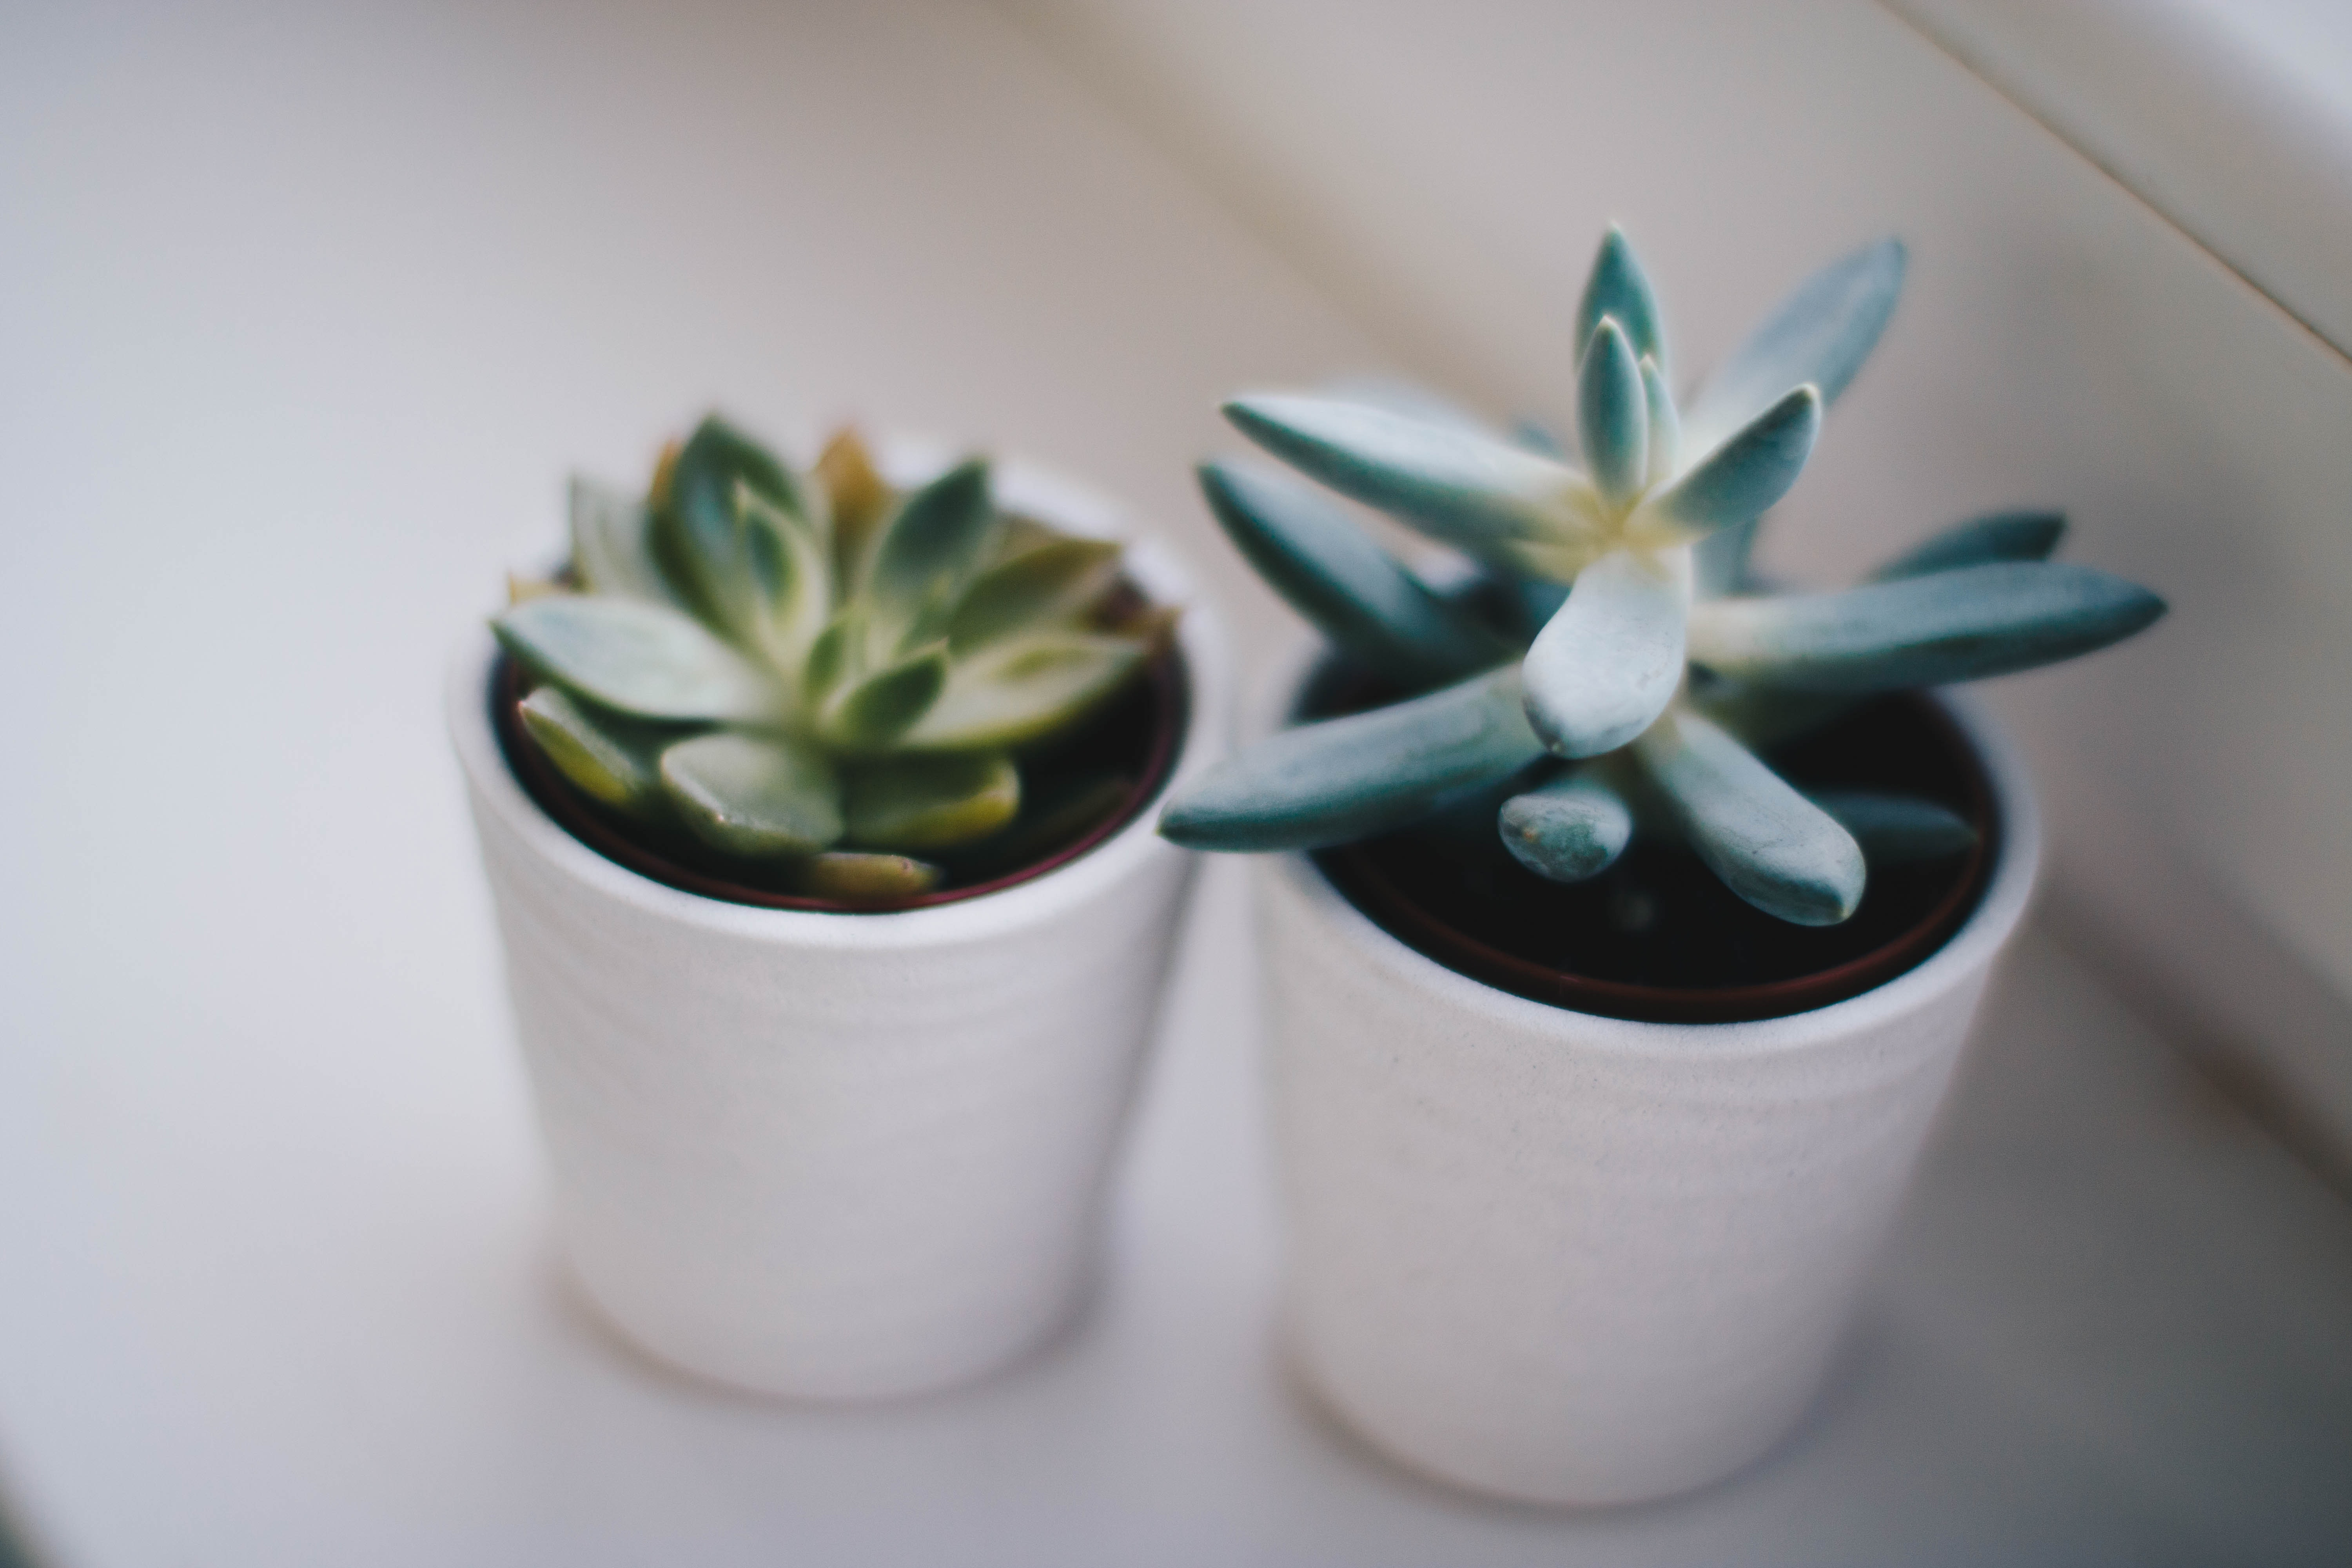 Two green succulent plants photo